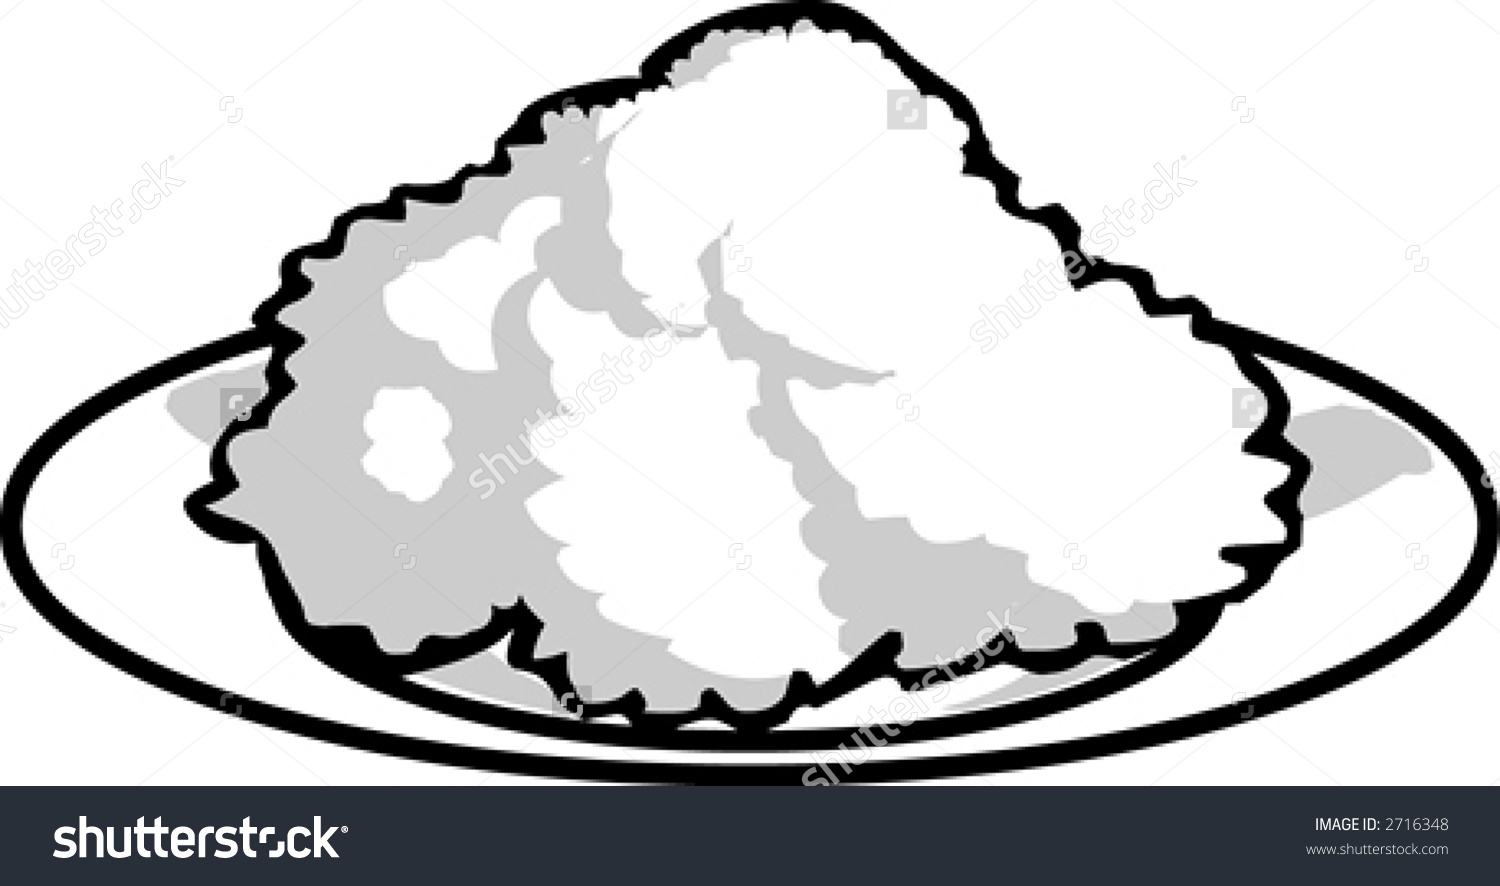 Rice dish clipart - Clipground